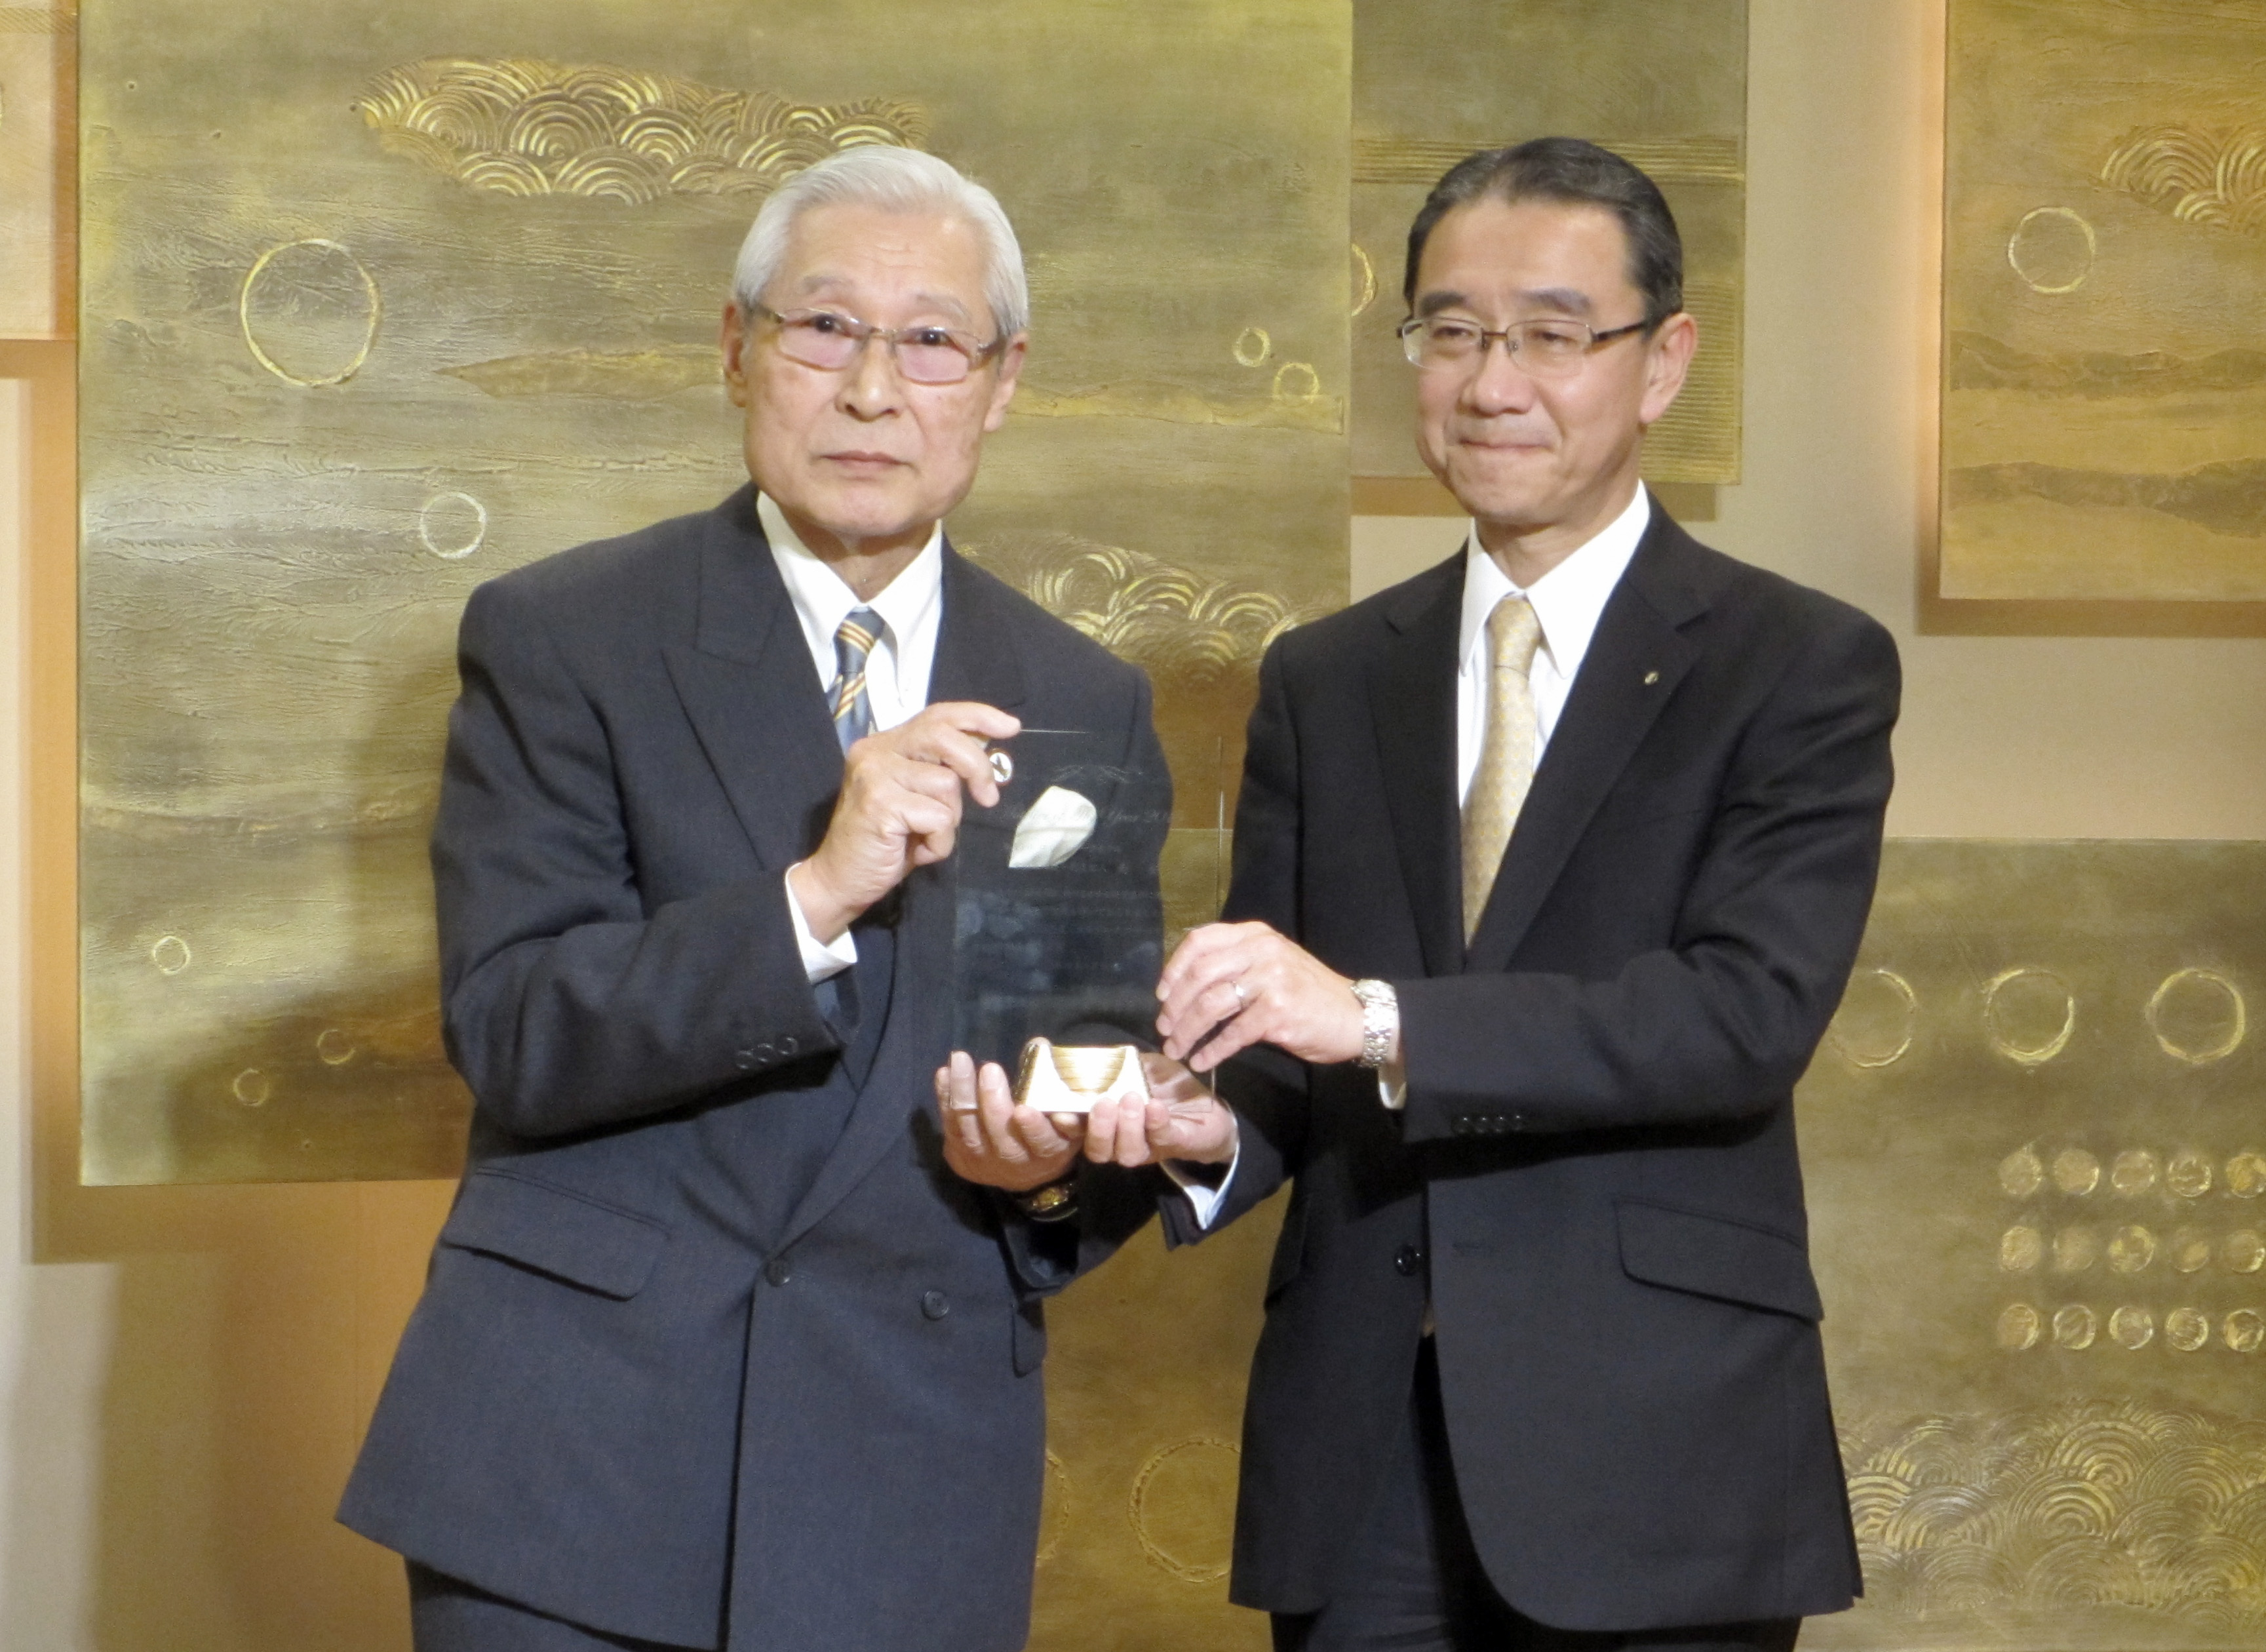 """""""Hotelier of the Year, 2015,"""" Yasushi Minami (right), managing director and general manager of the Royal Park Hotel receives an award recognizing his achievements from Yasunari Ebihara (left), a representative of a hotel industry association, on March 16 at the Royal Park Hotel. 